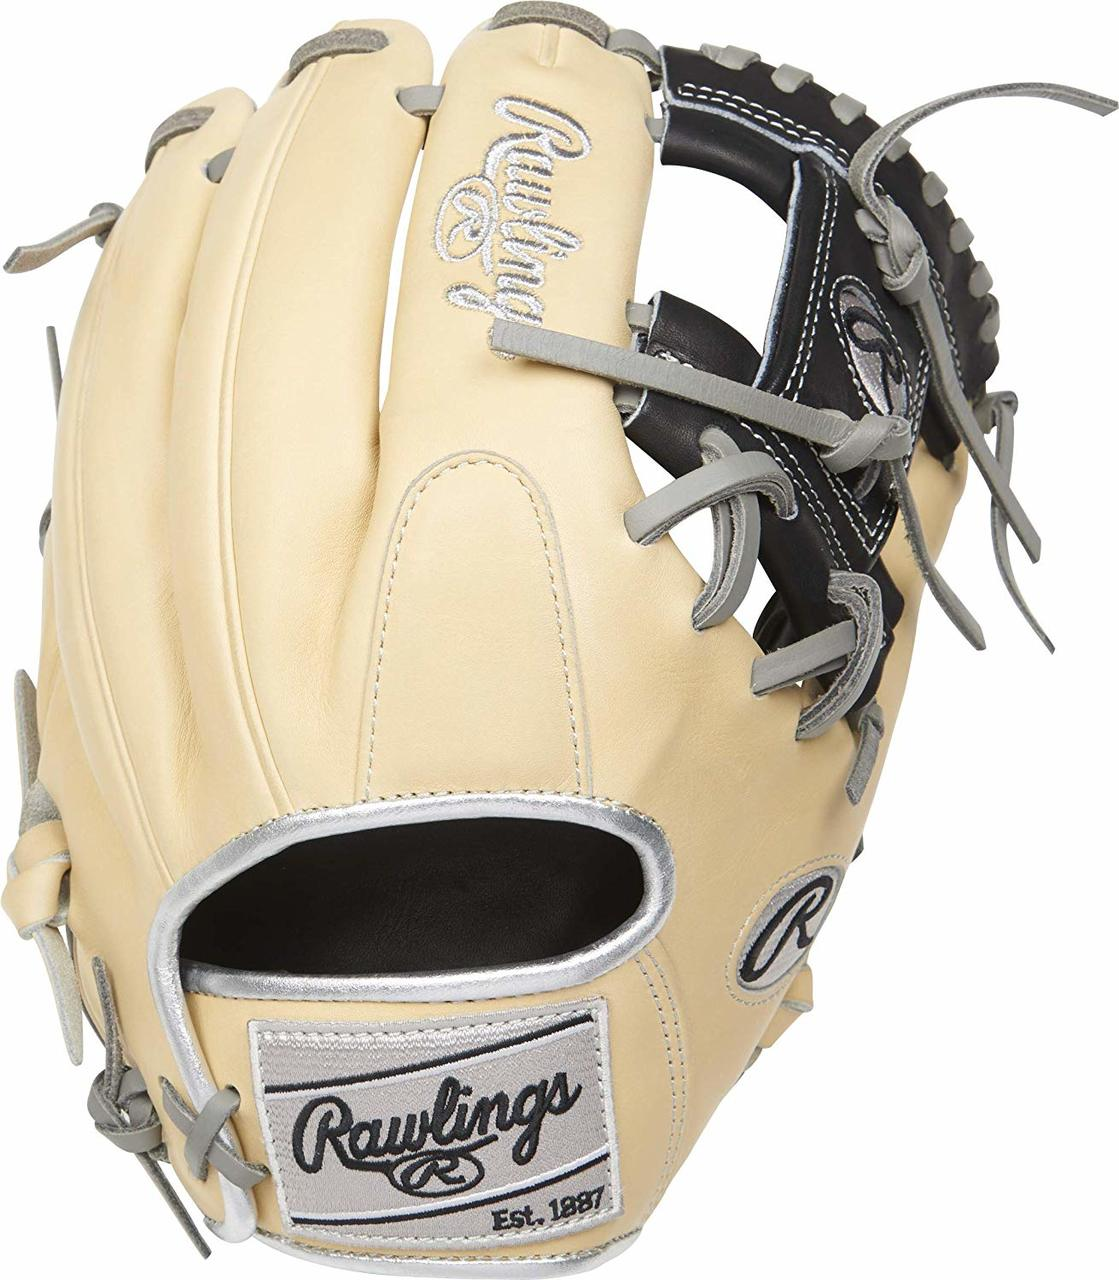 rawlings-heart-of-the-hide-r2g-francisco-lindor-model-baseball-glove-11-75-inch-i-web-right-hand-throw PRORFL12-RightHandThrow Rawlings 083321598906 Game-ready and as durable as can be — two characteristics you